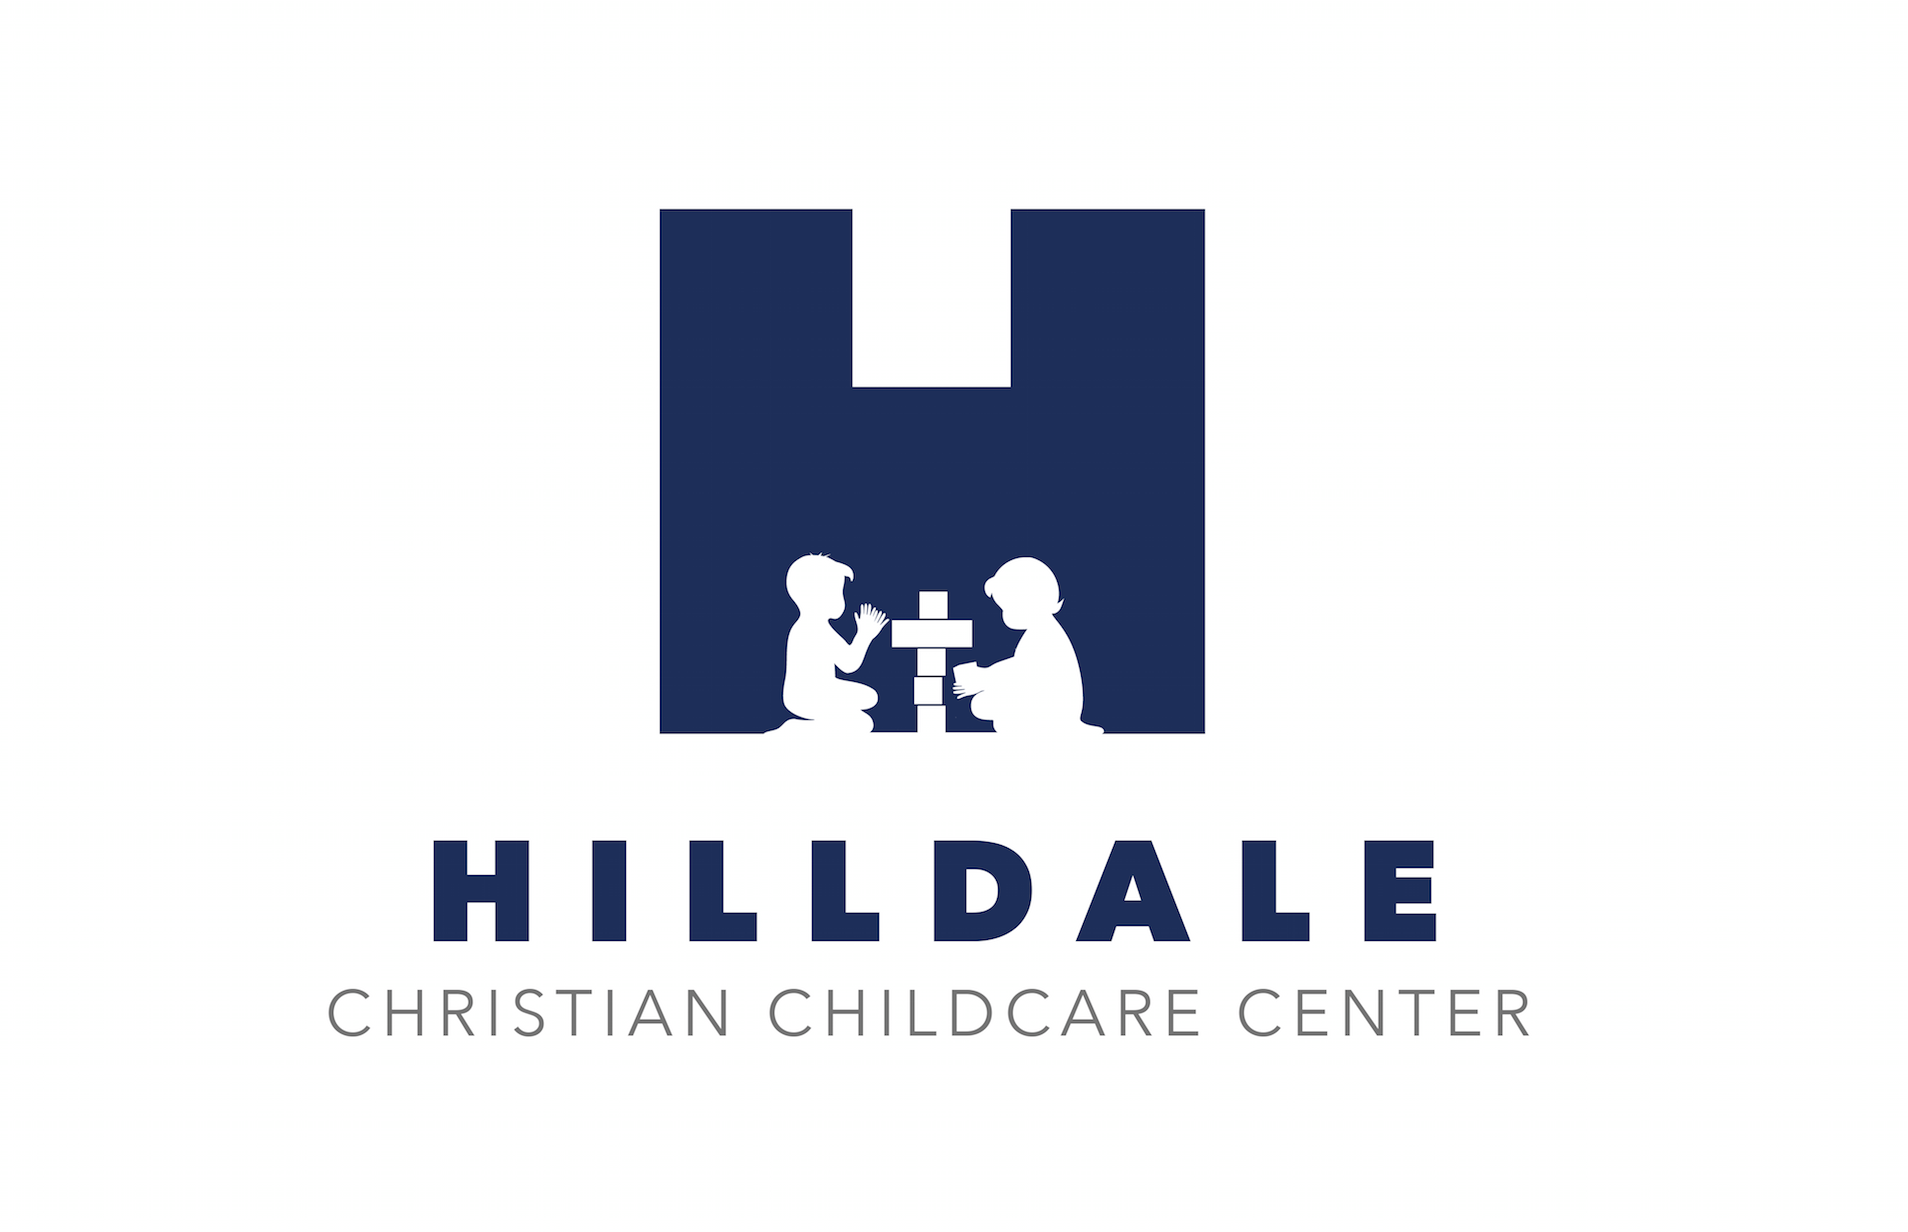 Hilldale Christian Child Care Center